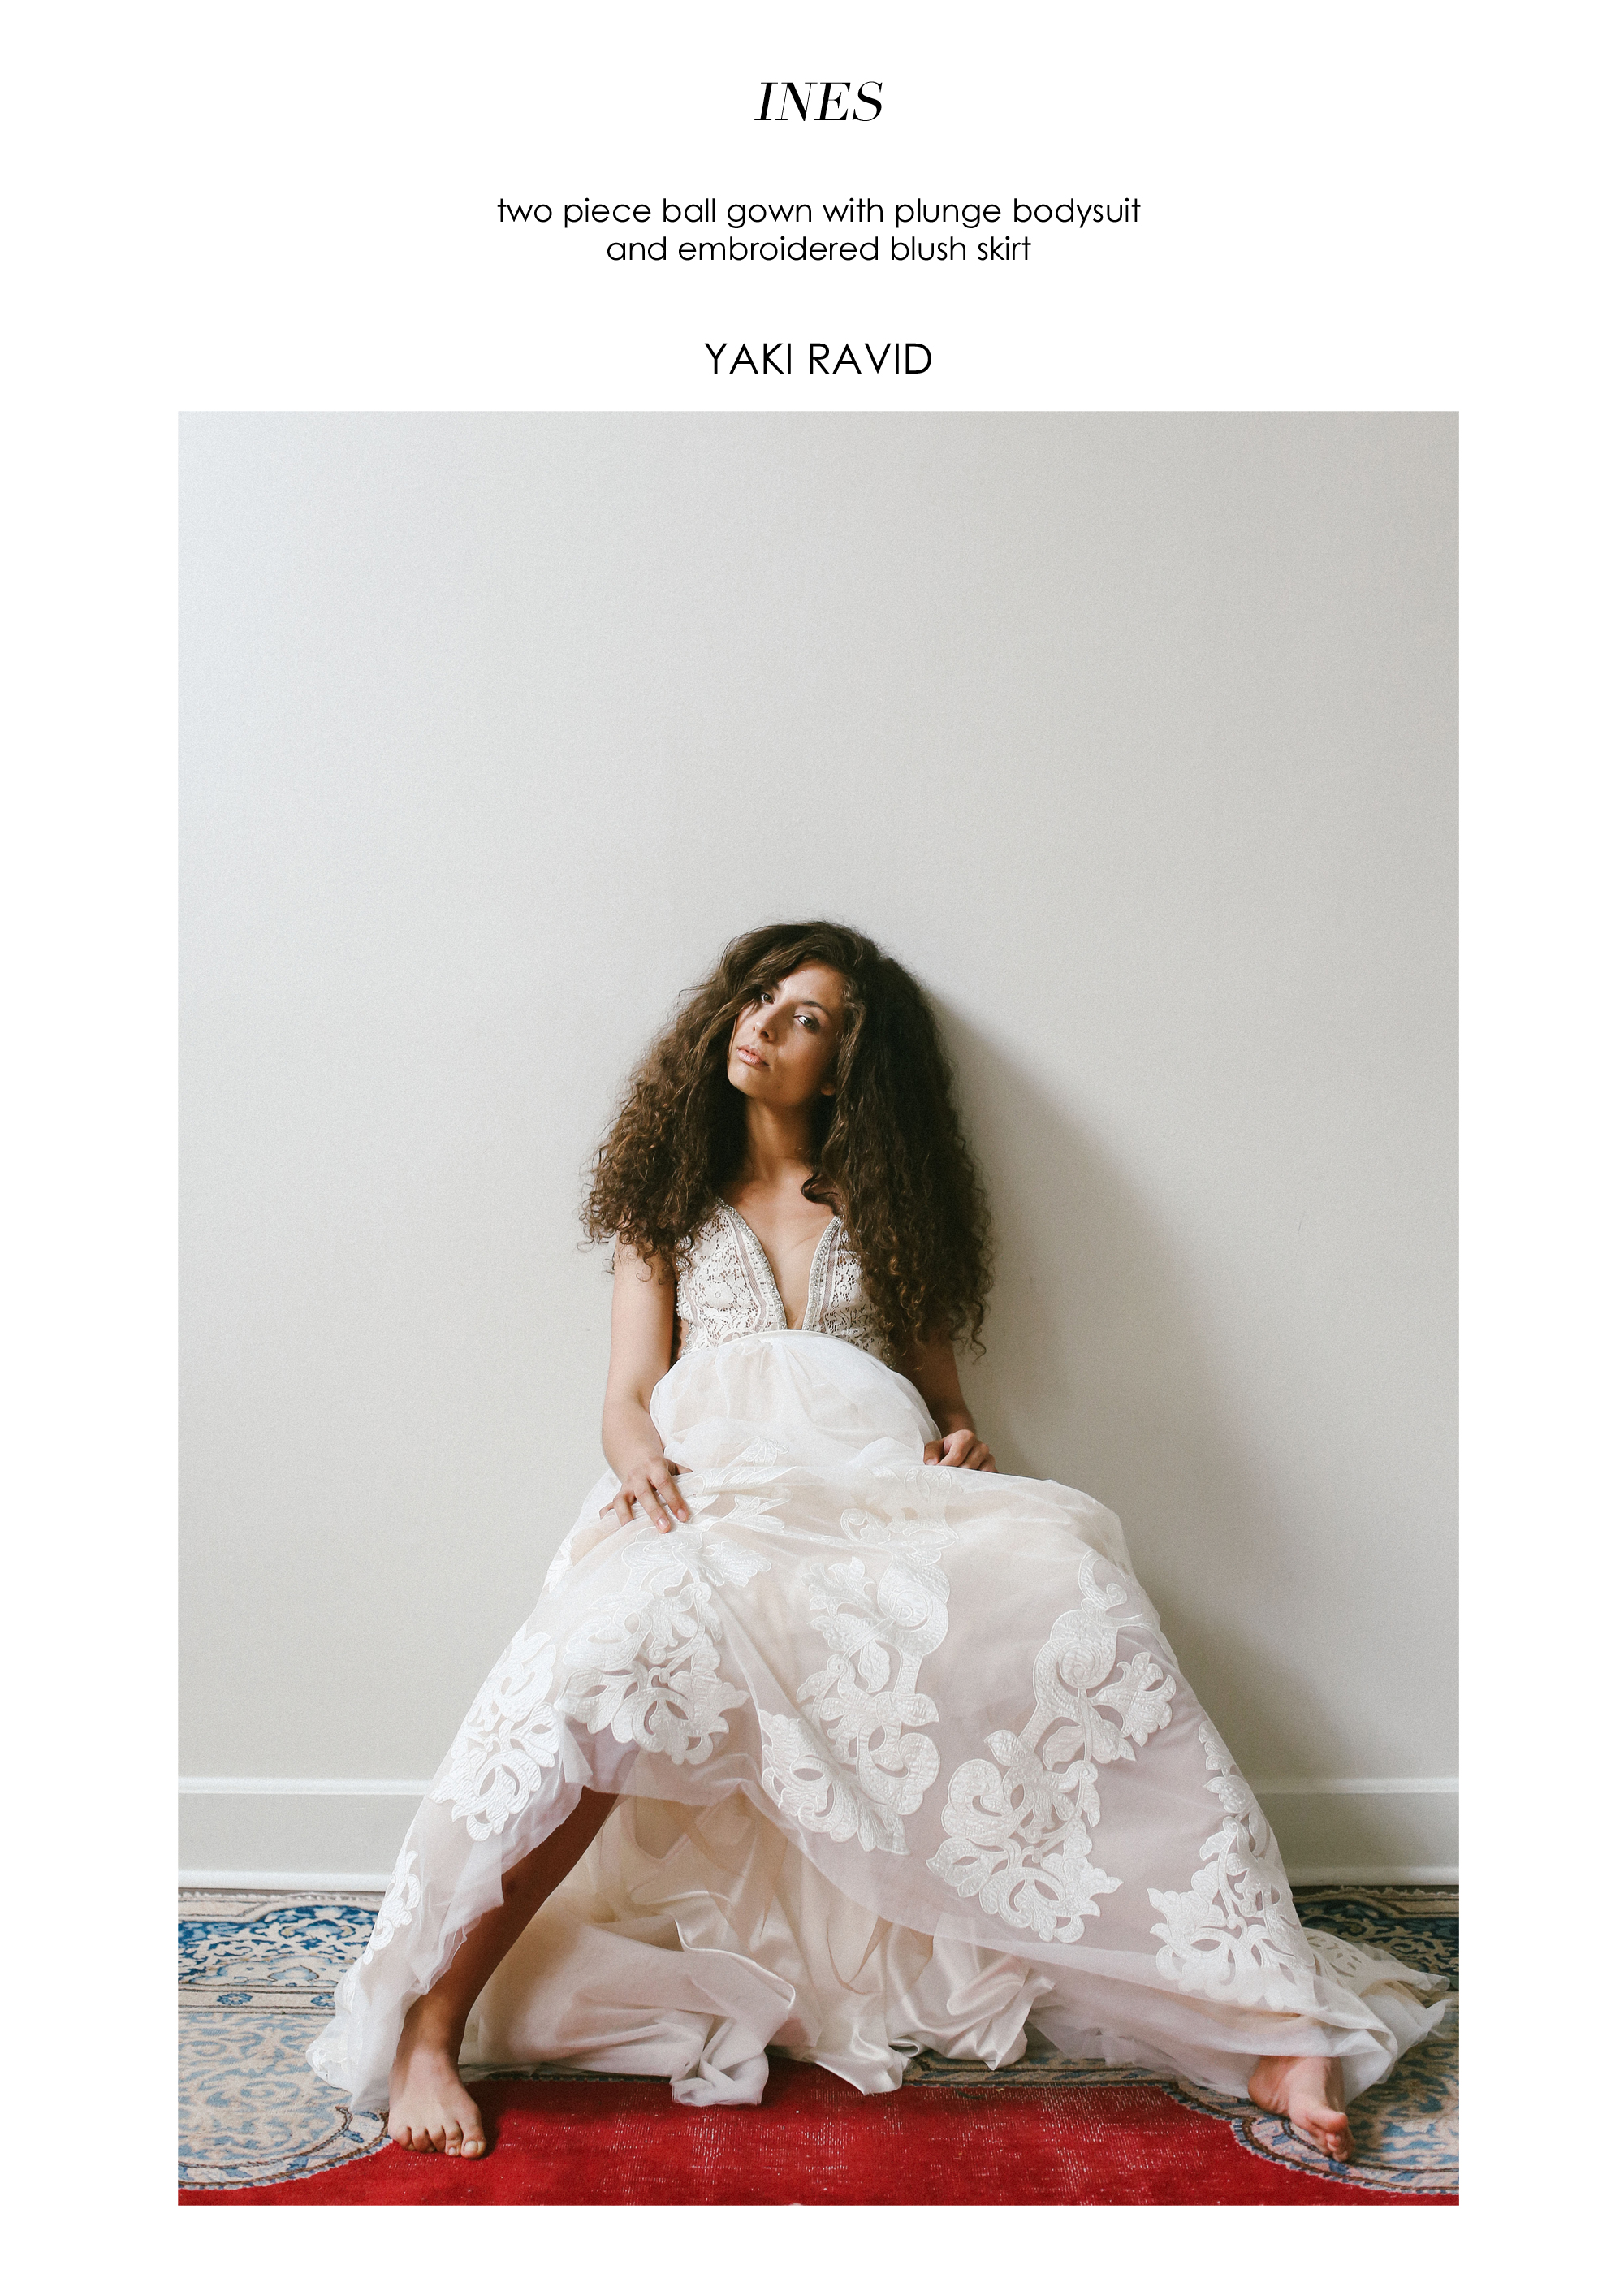 finery-boutique-huntsivlle-alabama-bohemian-wedding-shop-odylyne-the-ceremony-yolan-cris-bride-bridal-yaki-ravid-berta-calla-blanche-lookbook-cool-nashville-tenessee-ballgown-princess